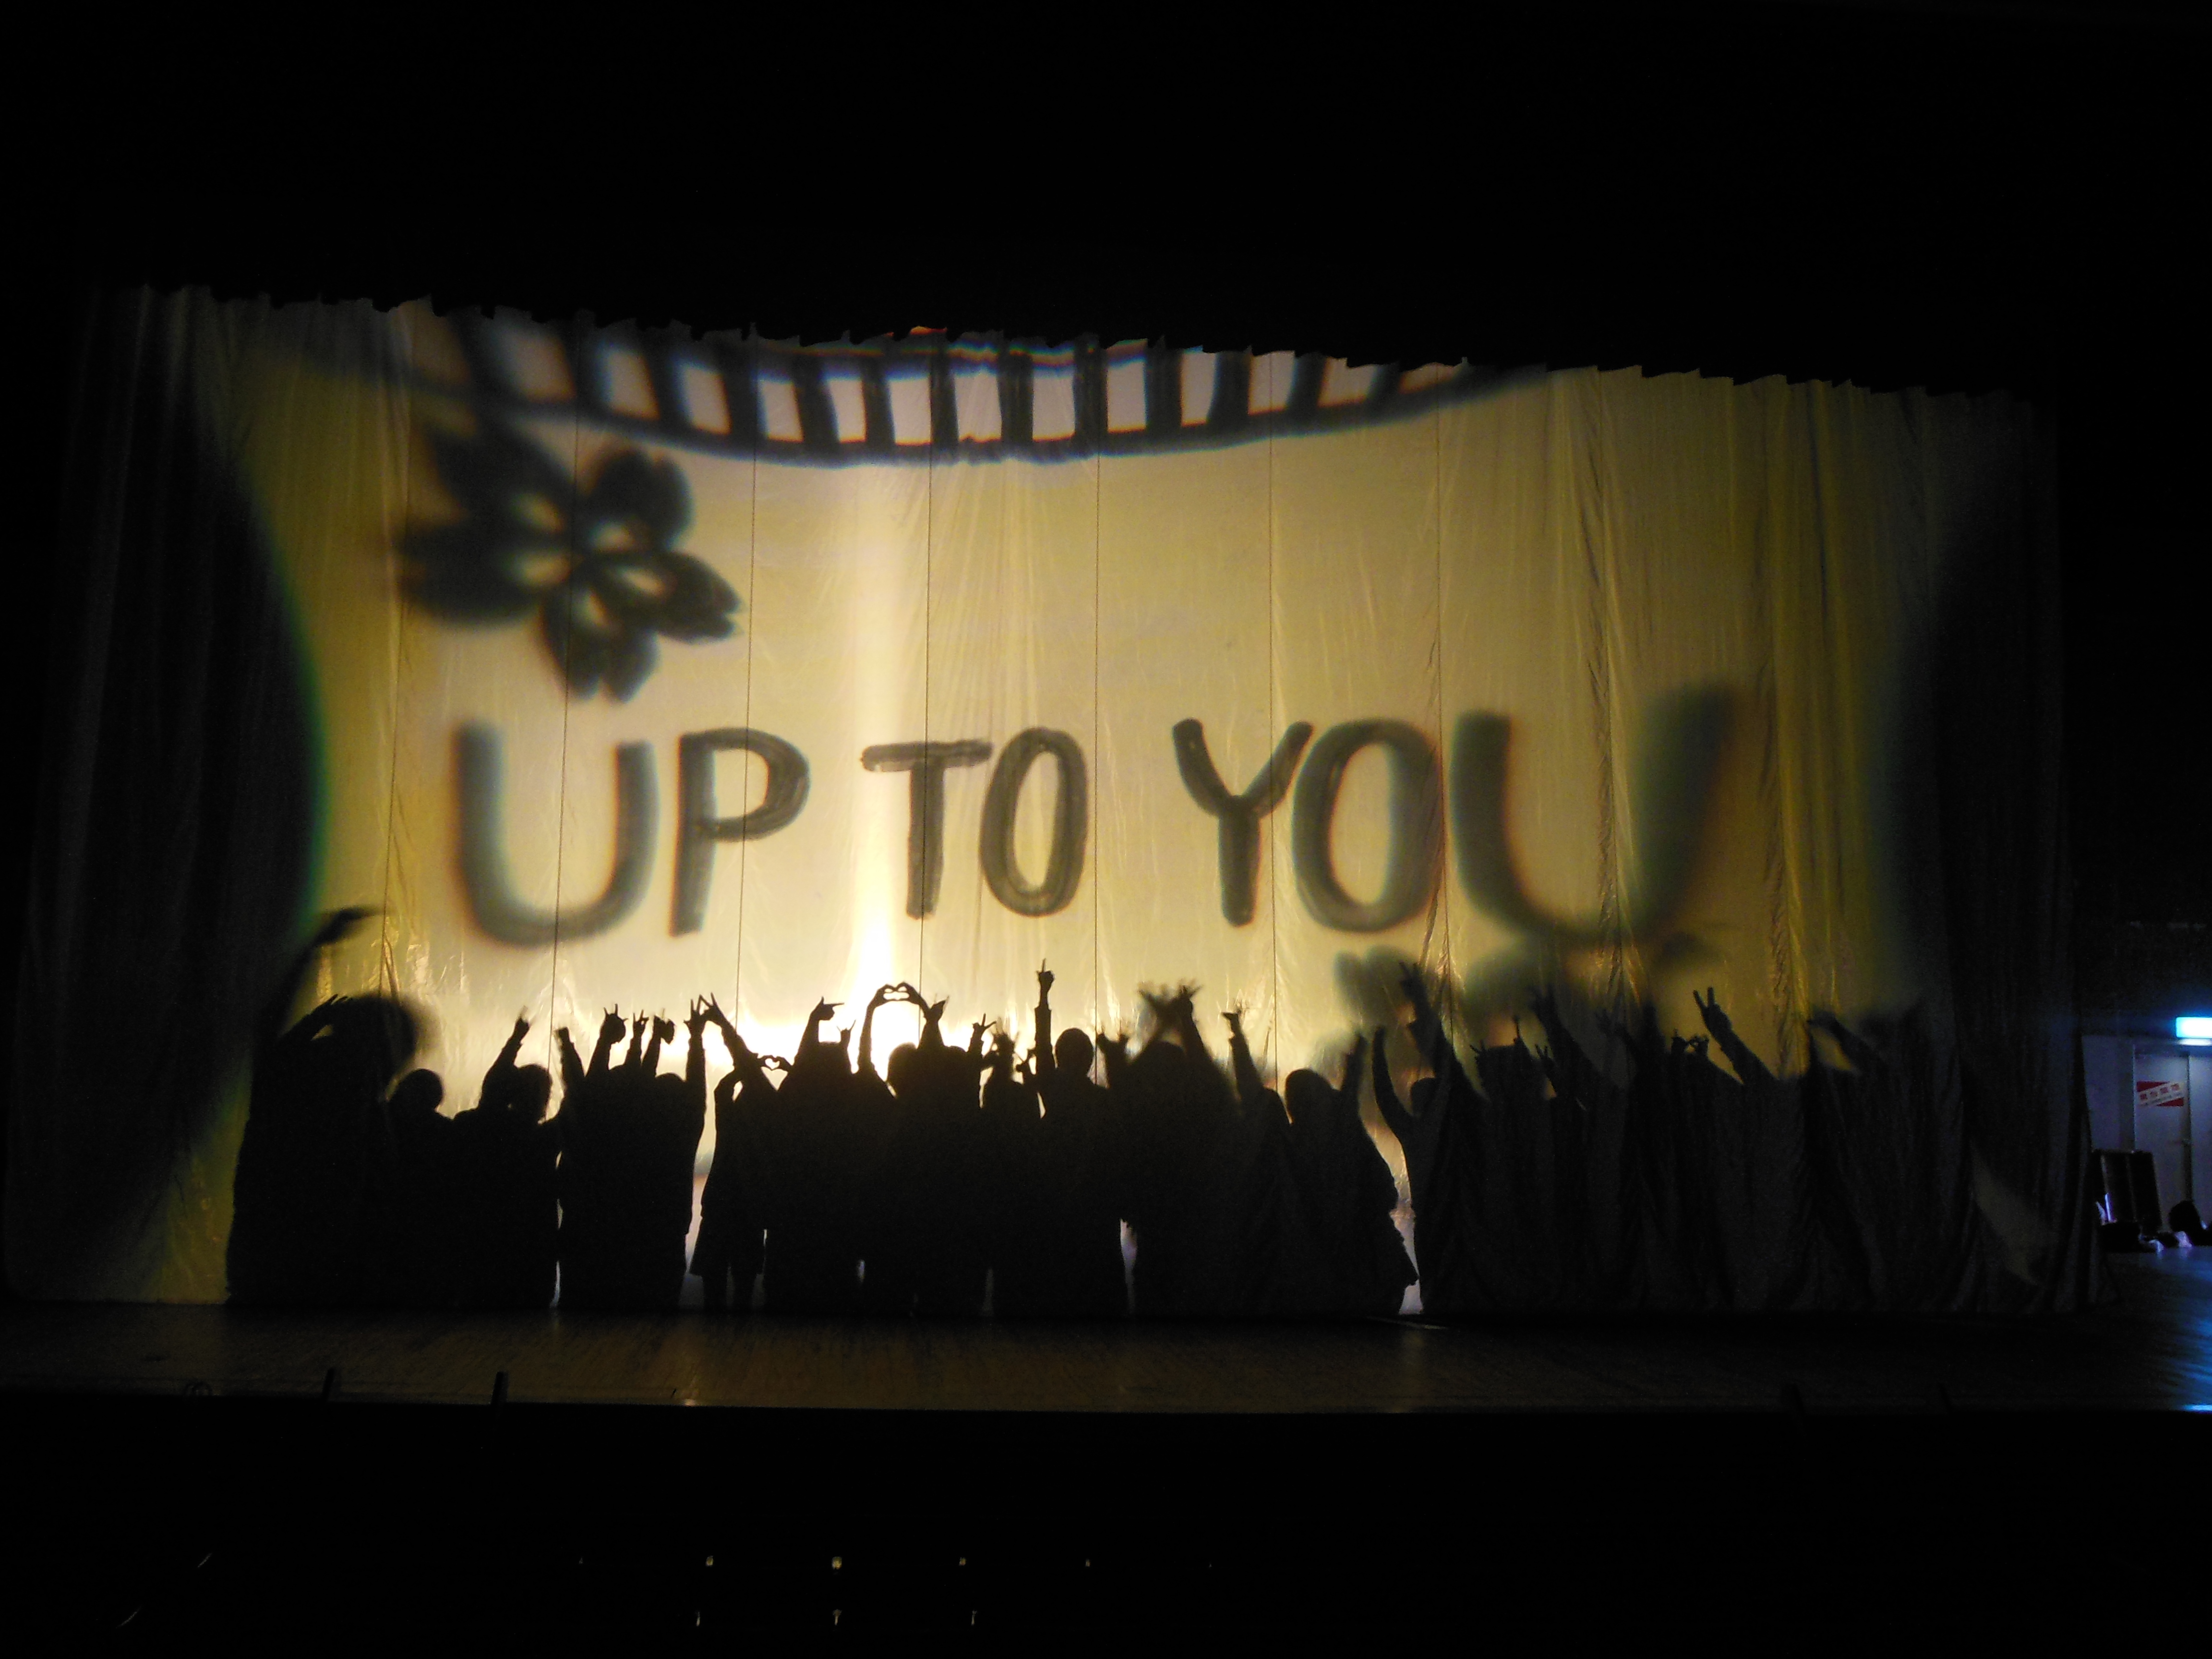 Up to you.JPG